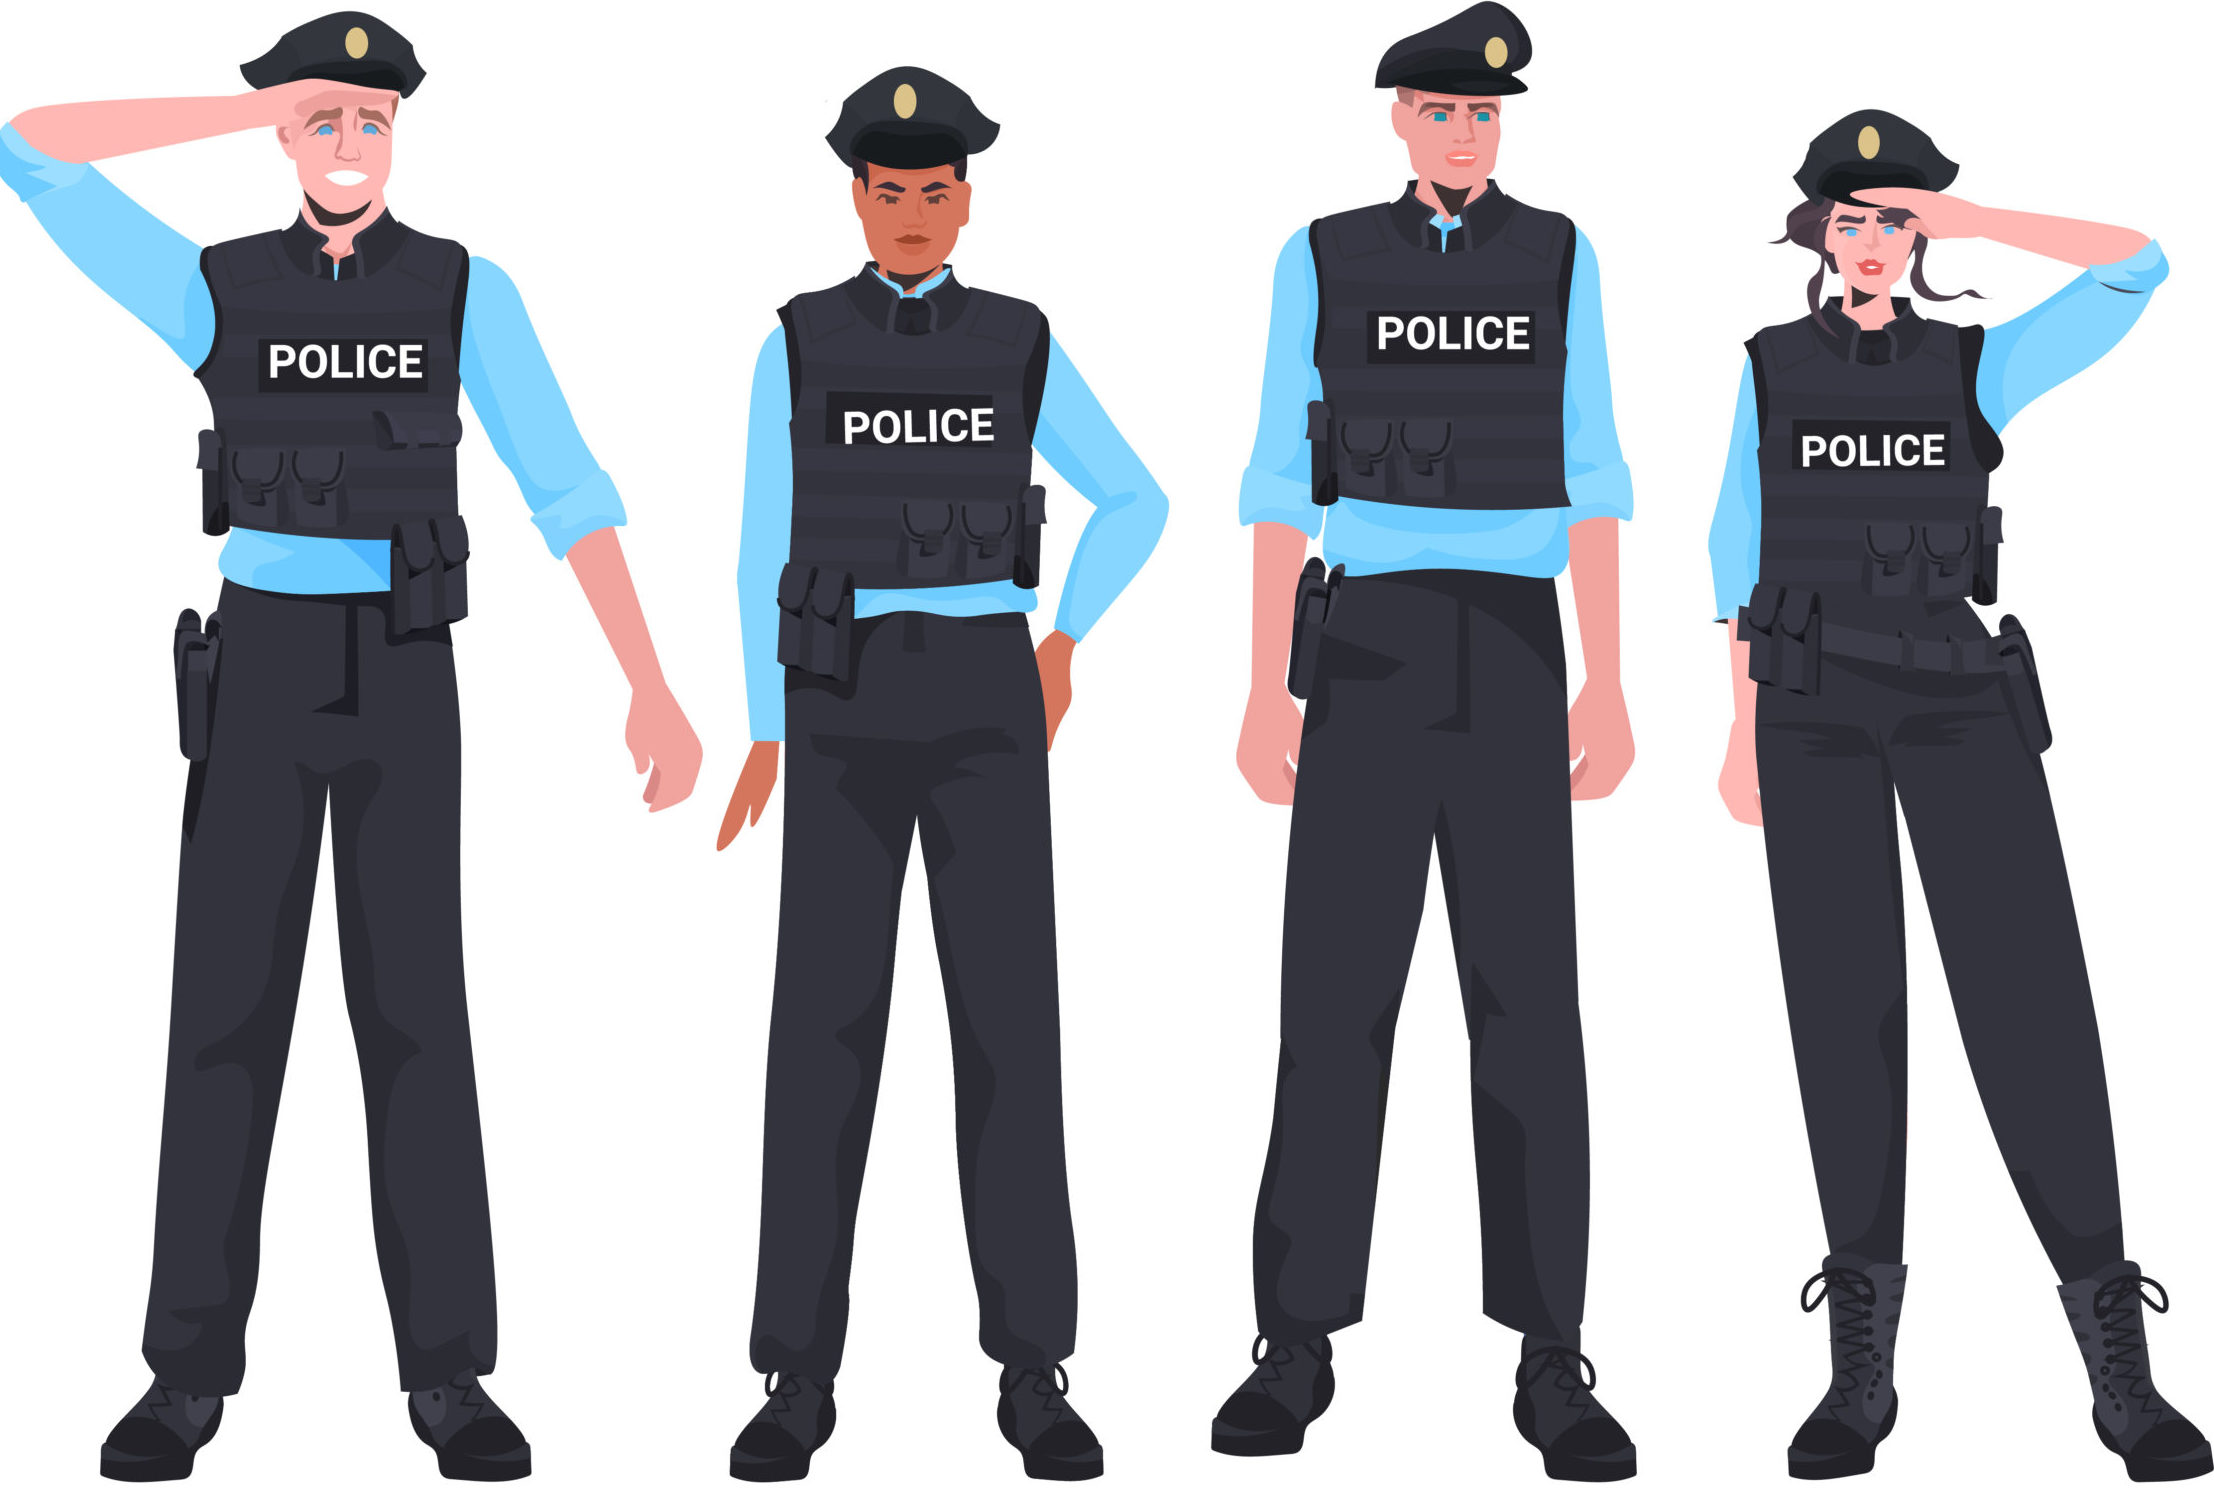 mix race policemen in tactical gear standing together riot police officers protesters and demonstration riots mass control concept horizontal full length vector illustration